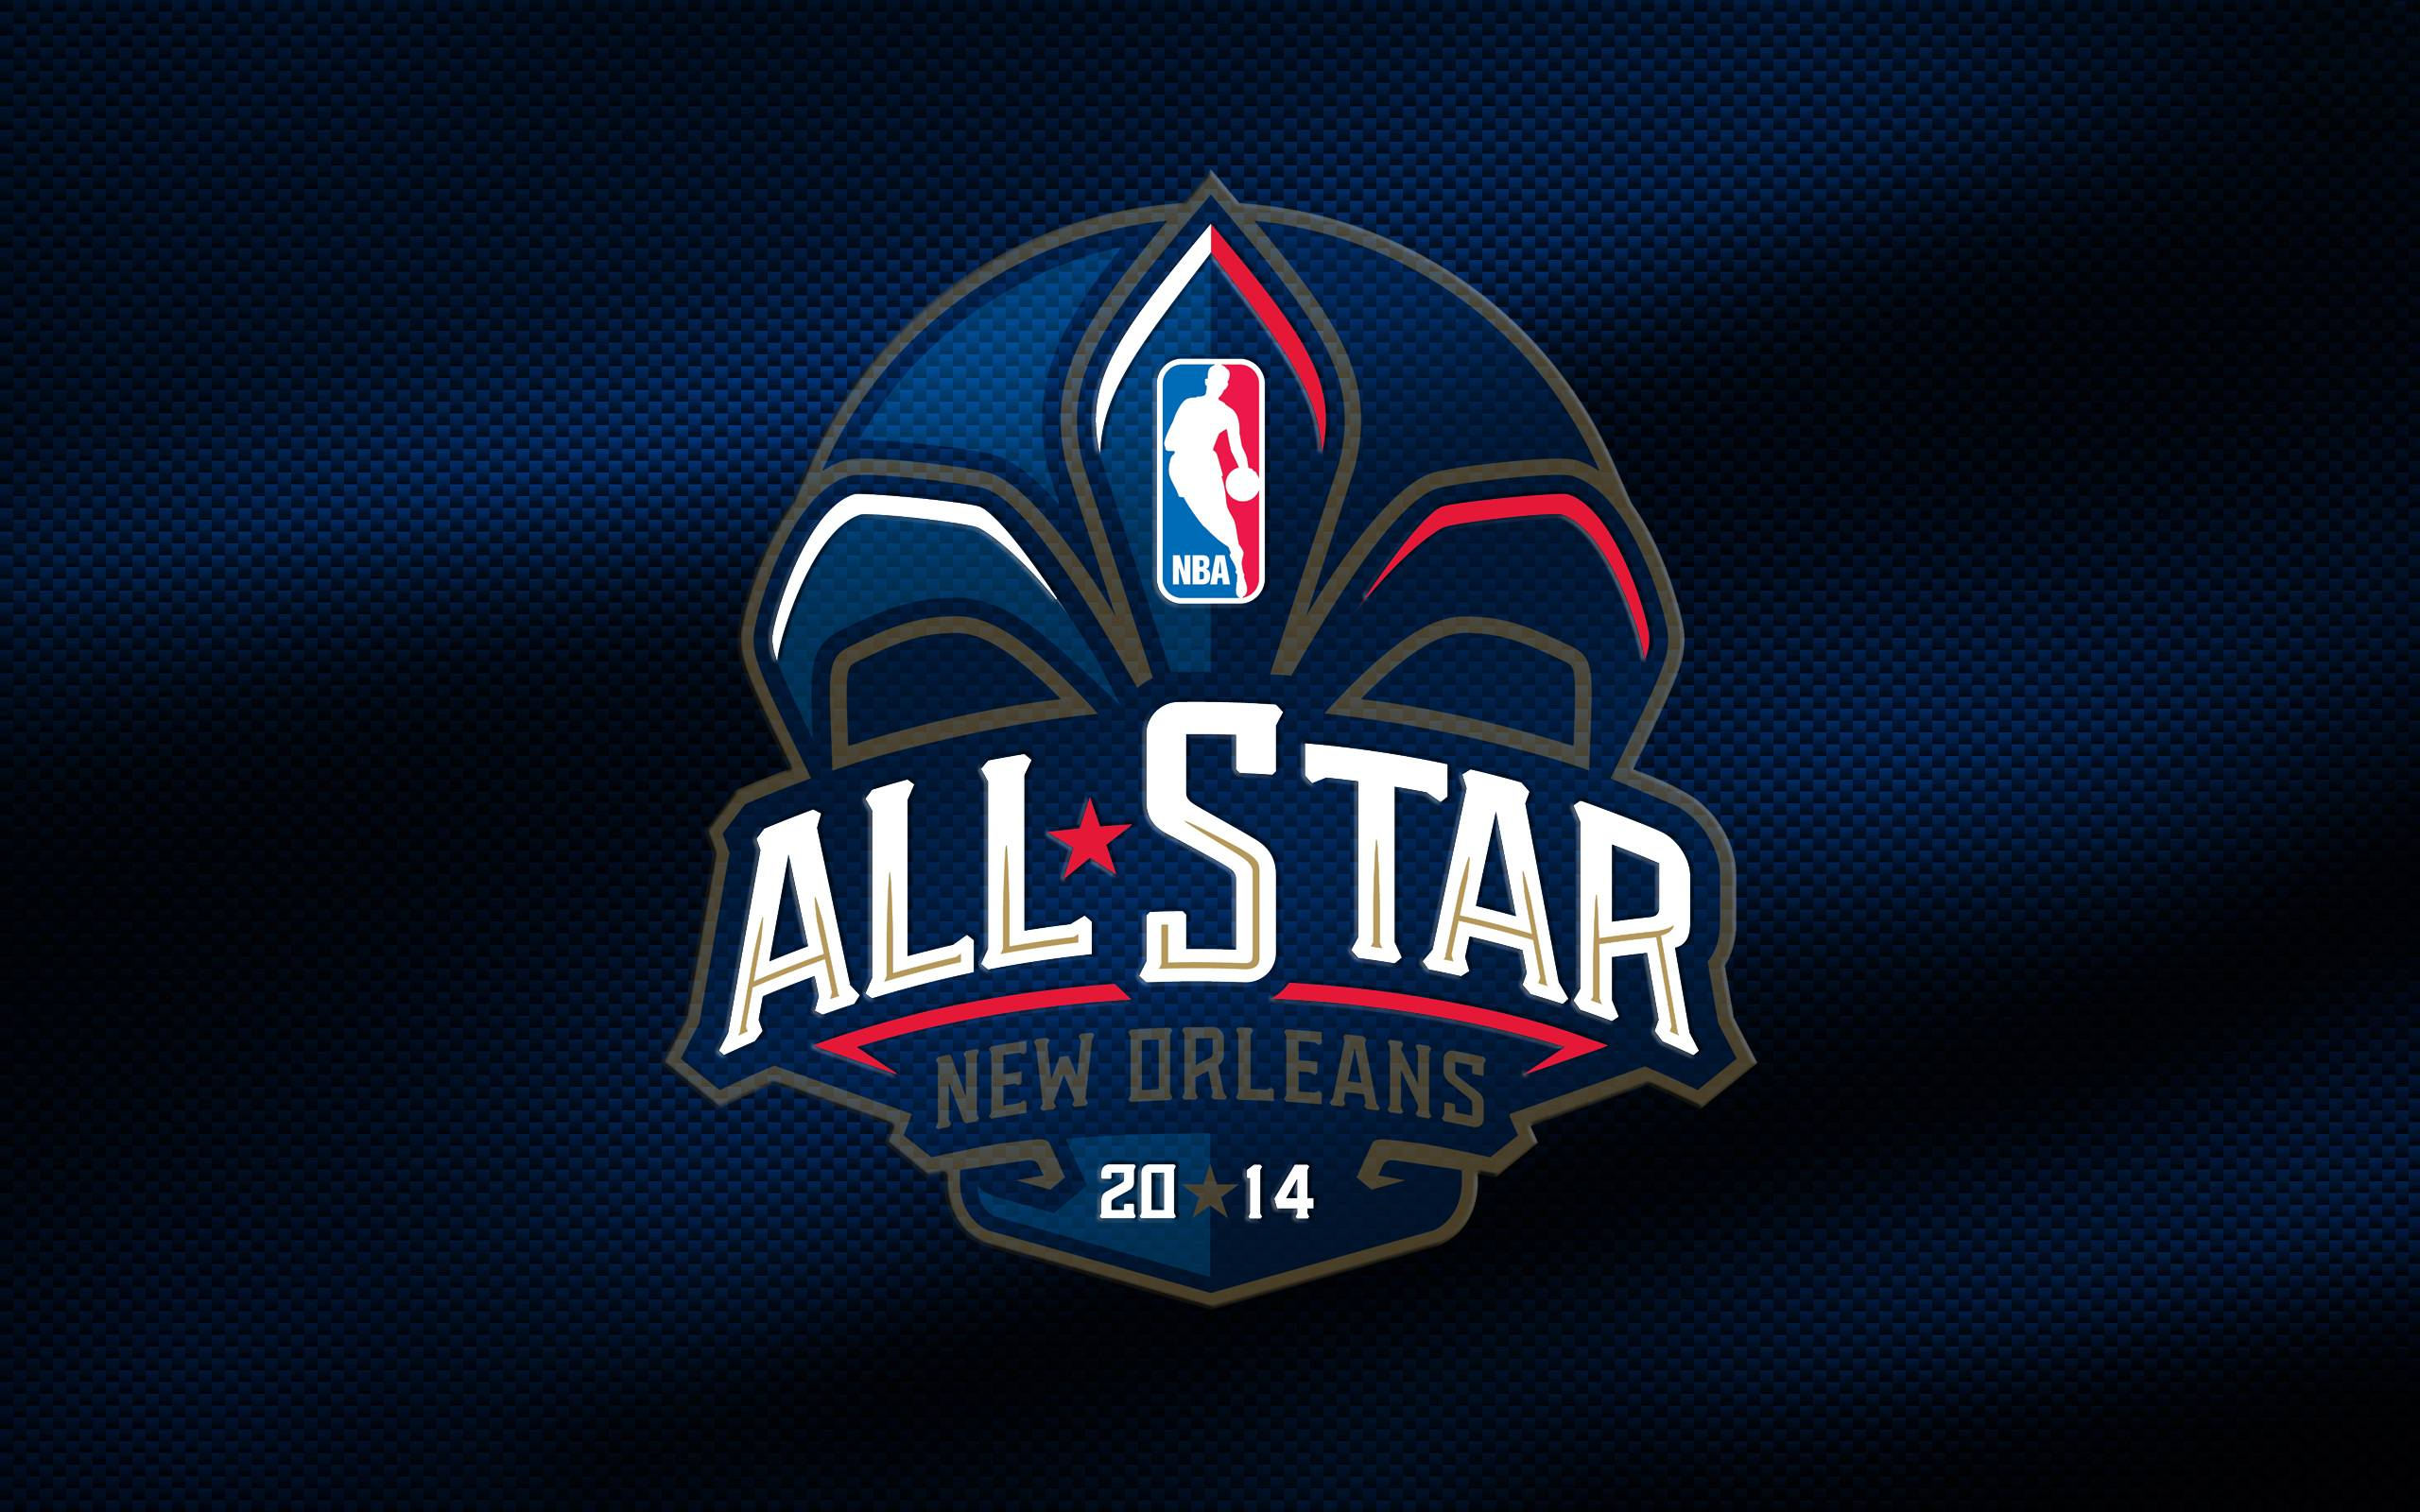 NBA All Star Game 2014 Logo Wallpaper Wide Or HD